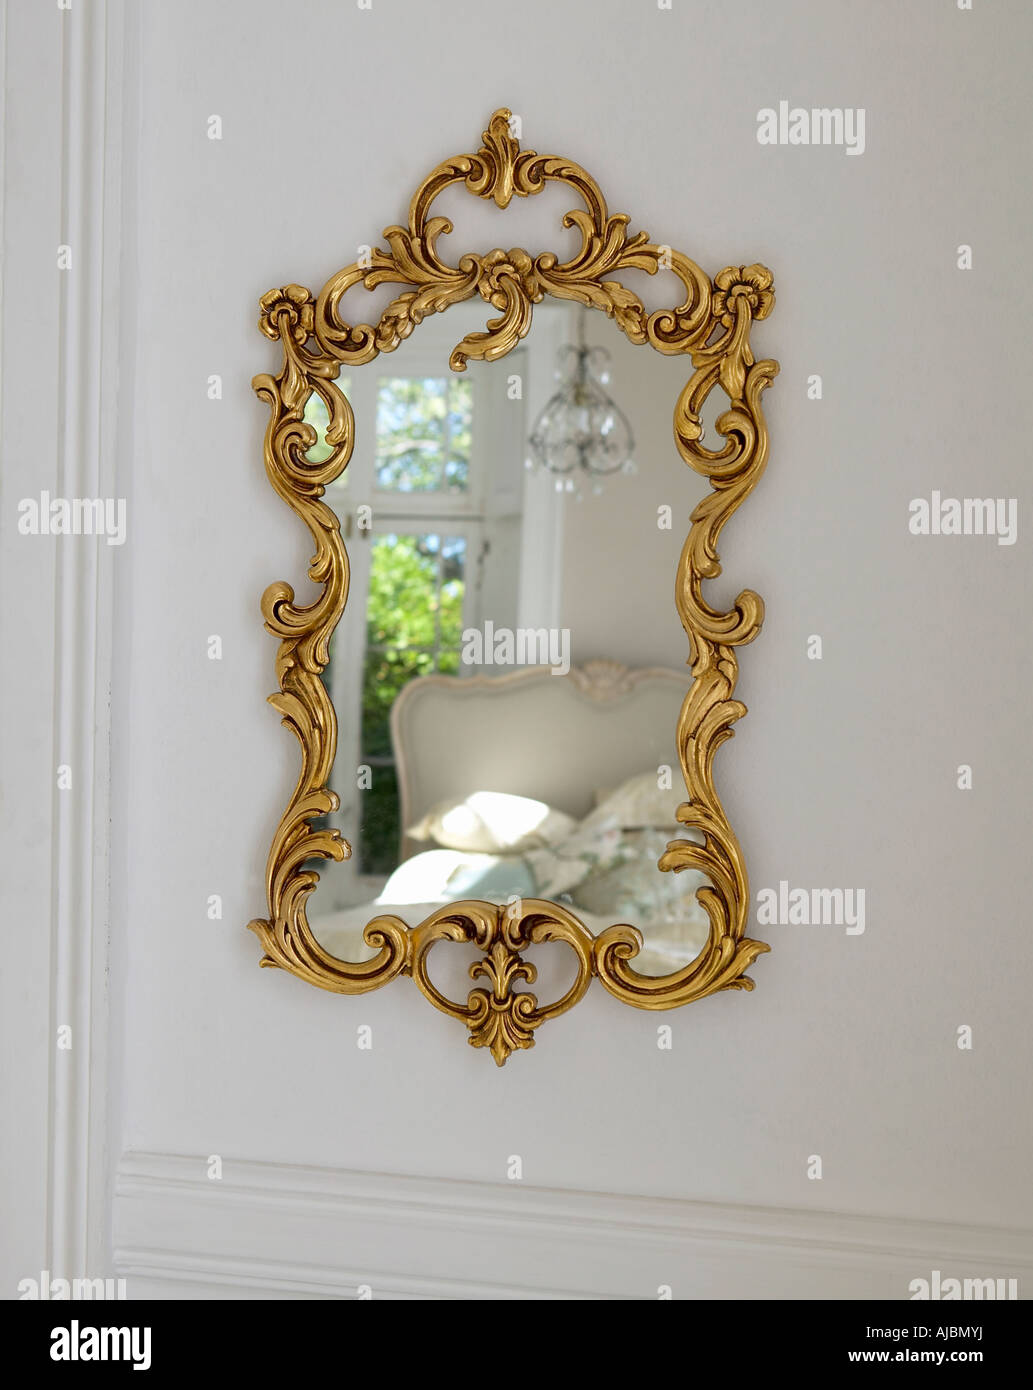 Baroque mirror on a wall stock photo royalty free image 14686661 baroque mirror on a wall amipublicfo Gallery